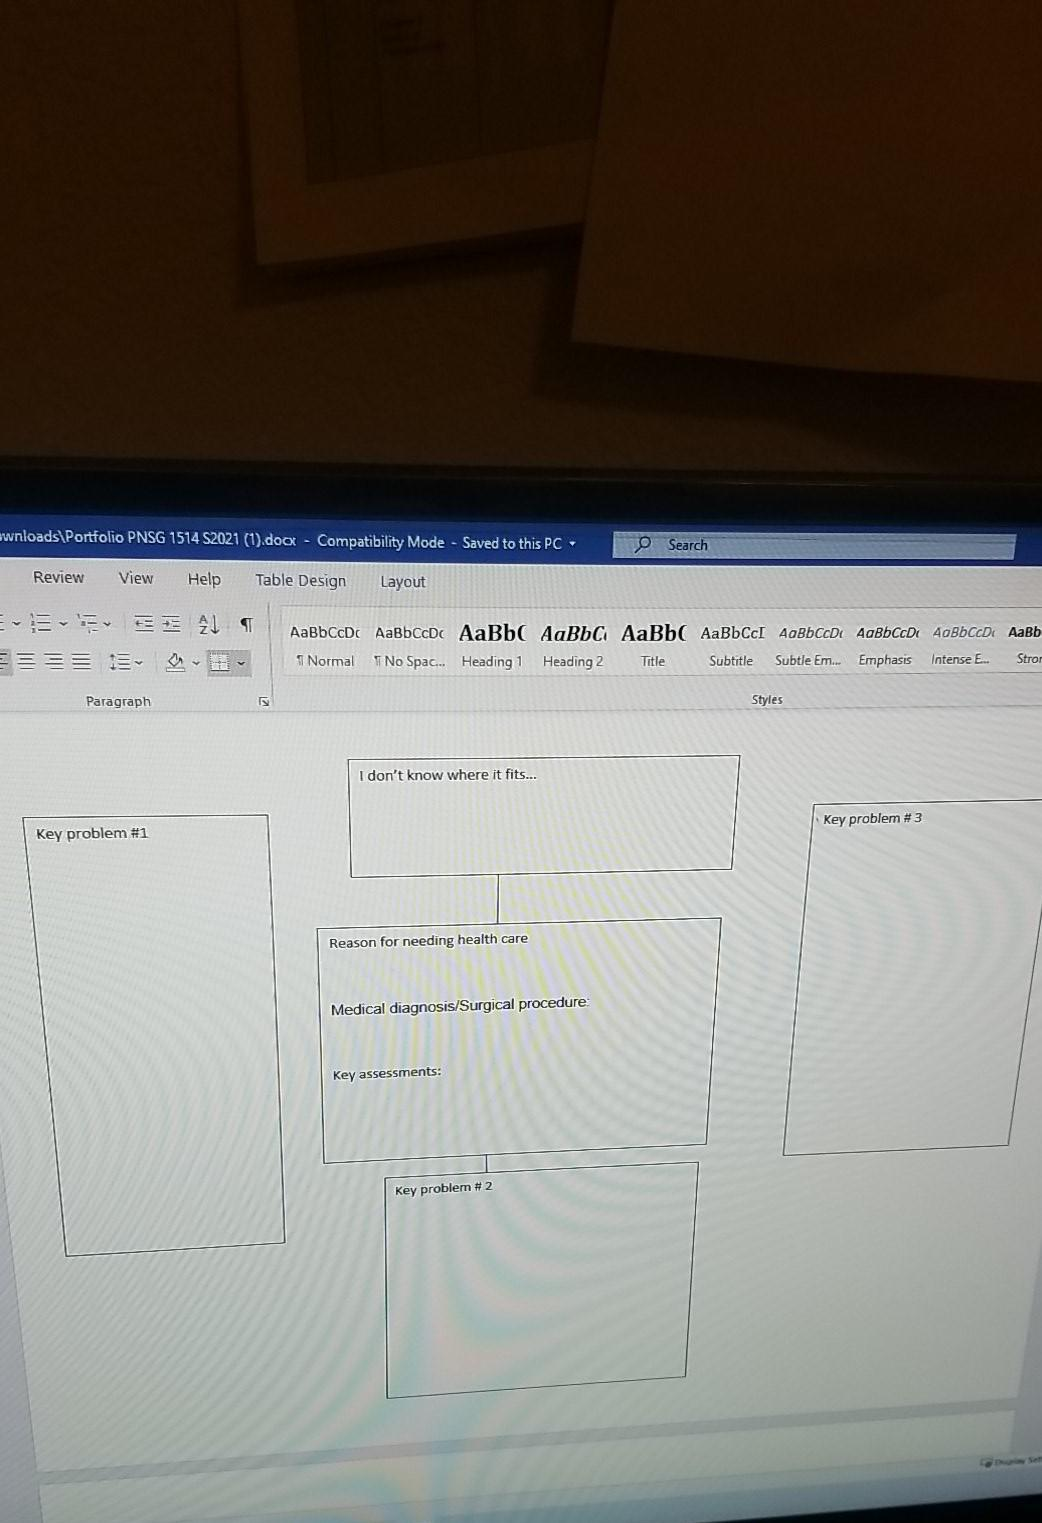 ownloads Portfolio PNSG 1514 S2021 (1).docx - Compatibility Mode - Saved to this PC- Search Review View Help Table Design Lay